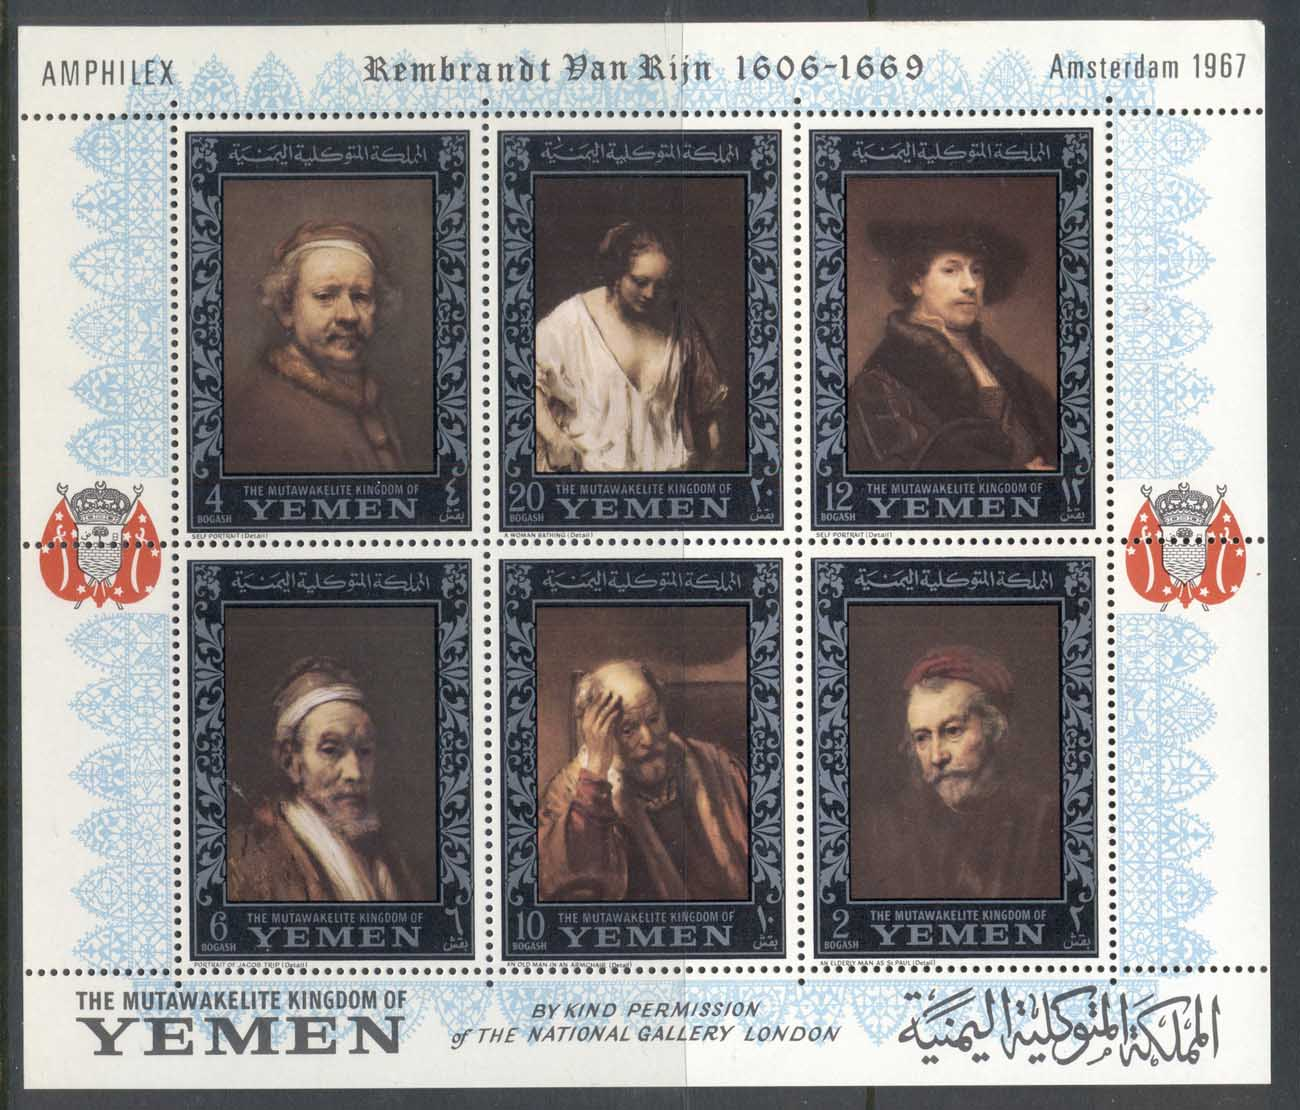 Yemen Kingdom 1967 Mi#MS37A Rembrandt Paintings, Amphilex Stamp Ex, silver borders MS MUH